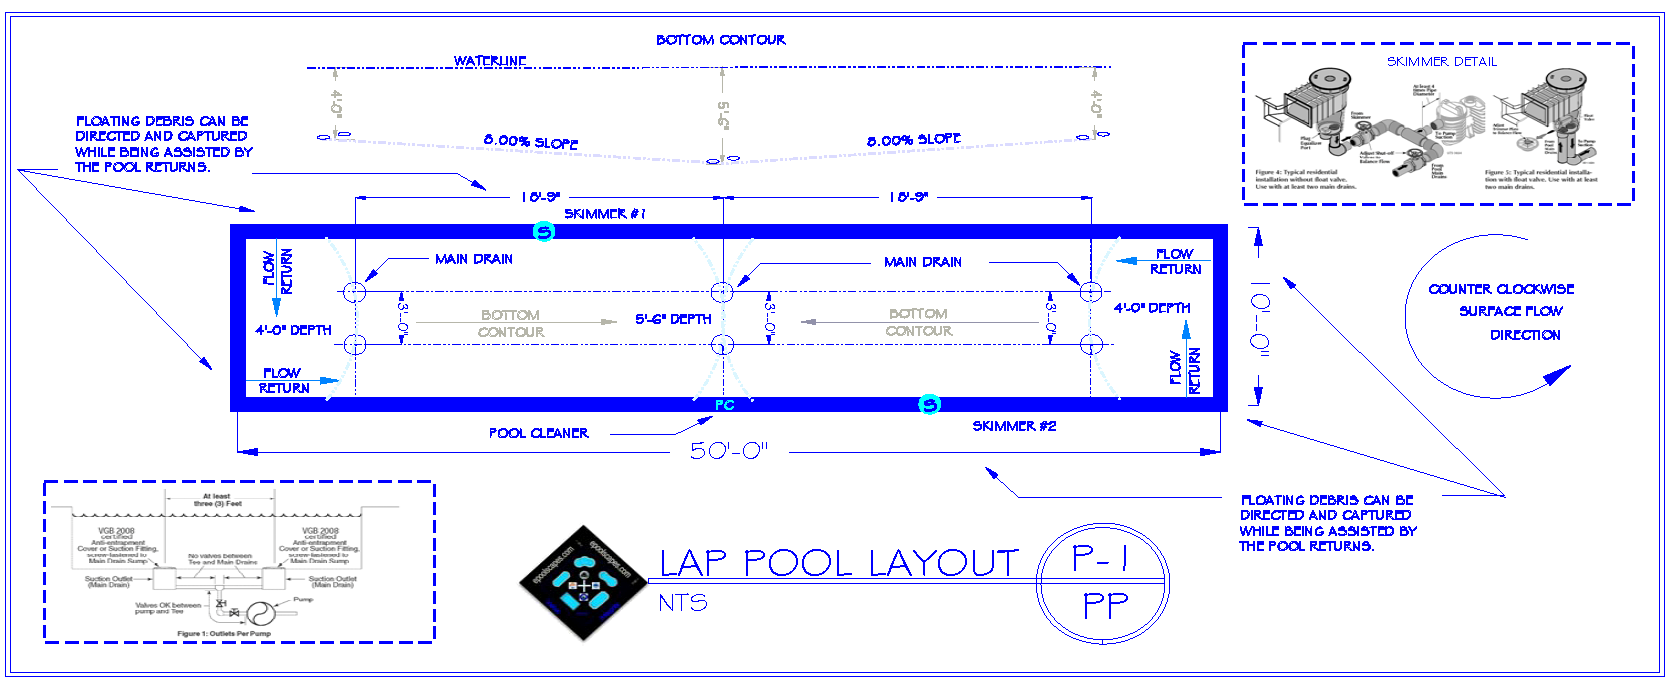 Lap Swimming Pool Bottom Contour